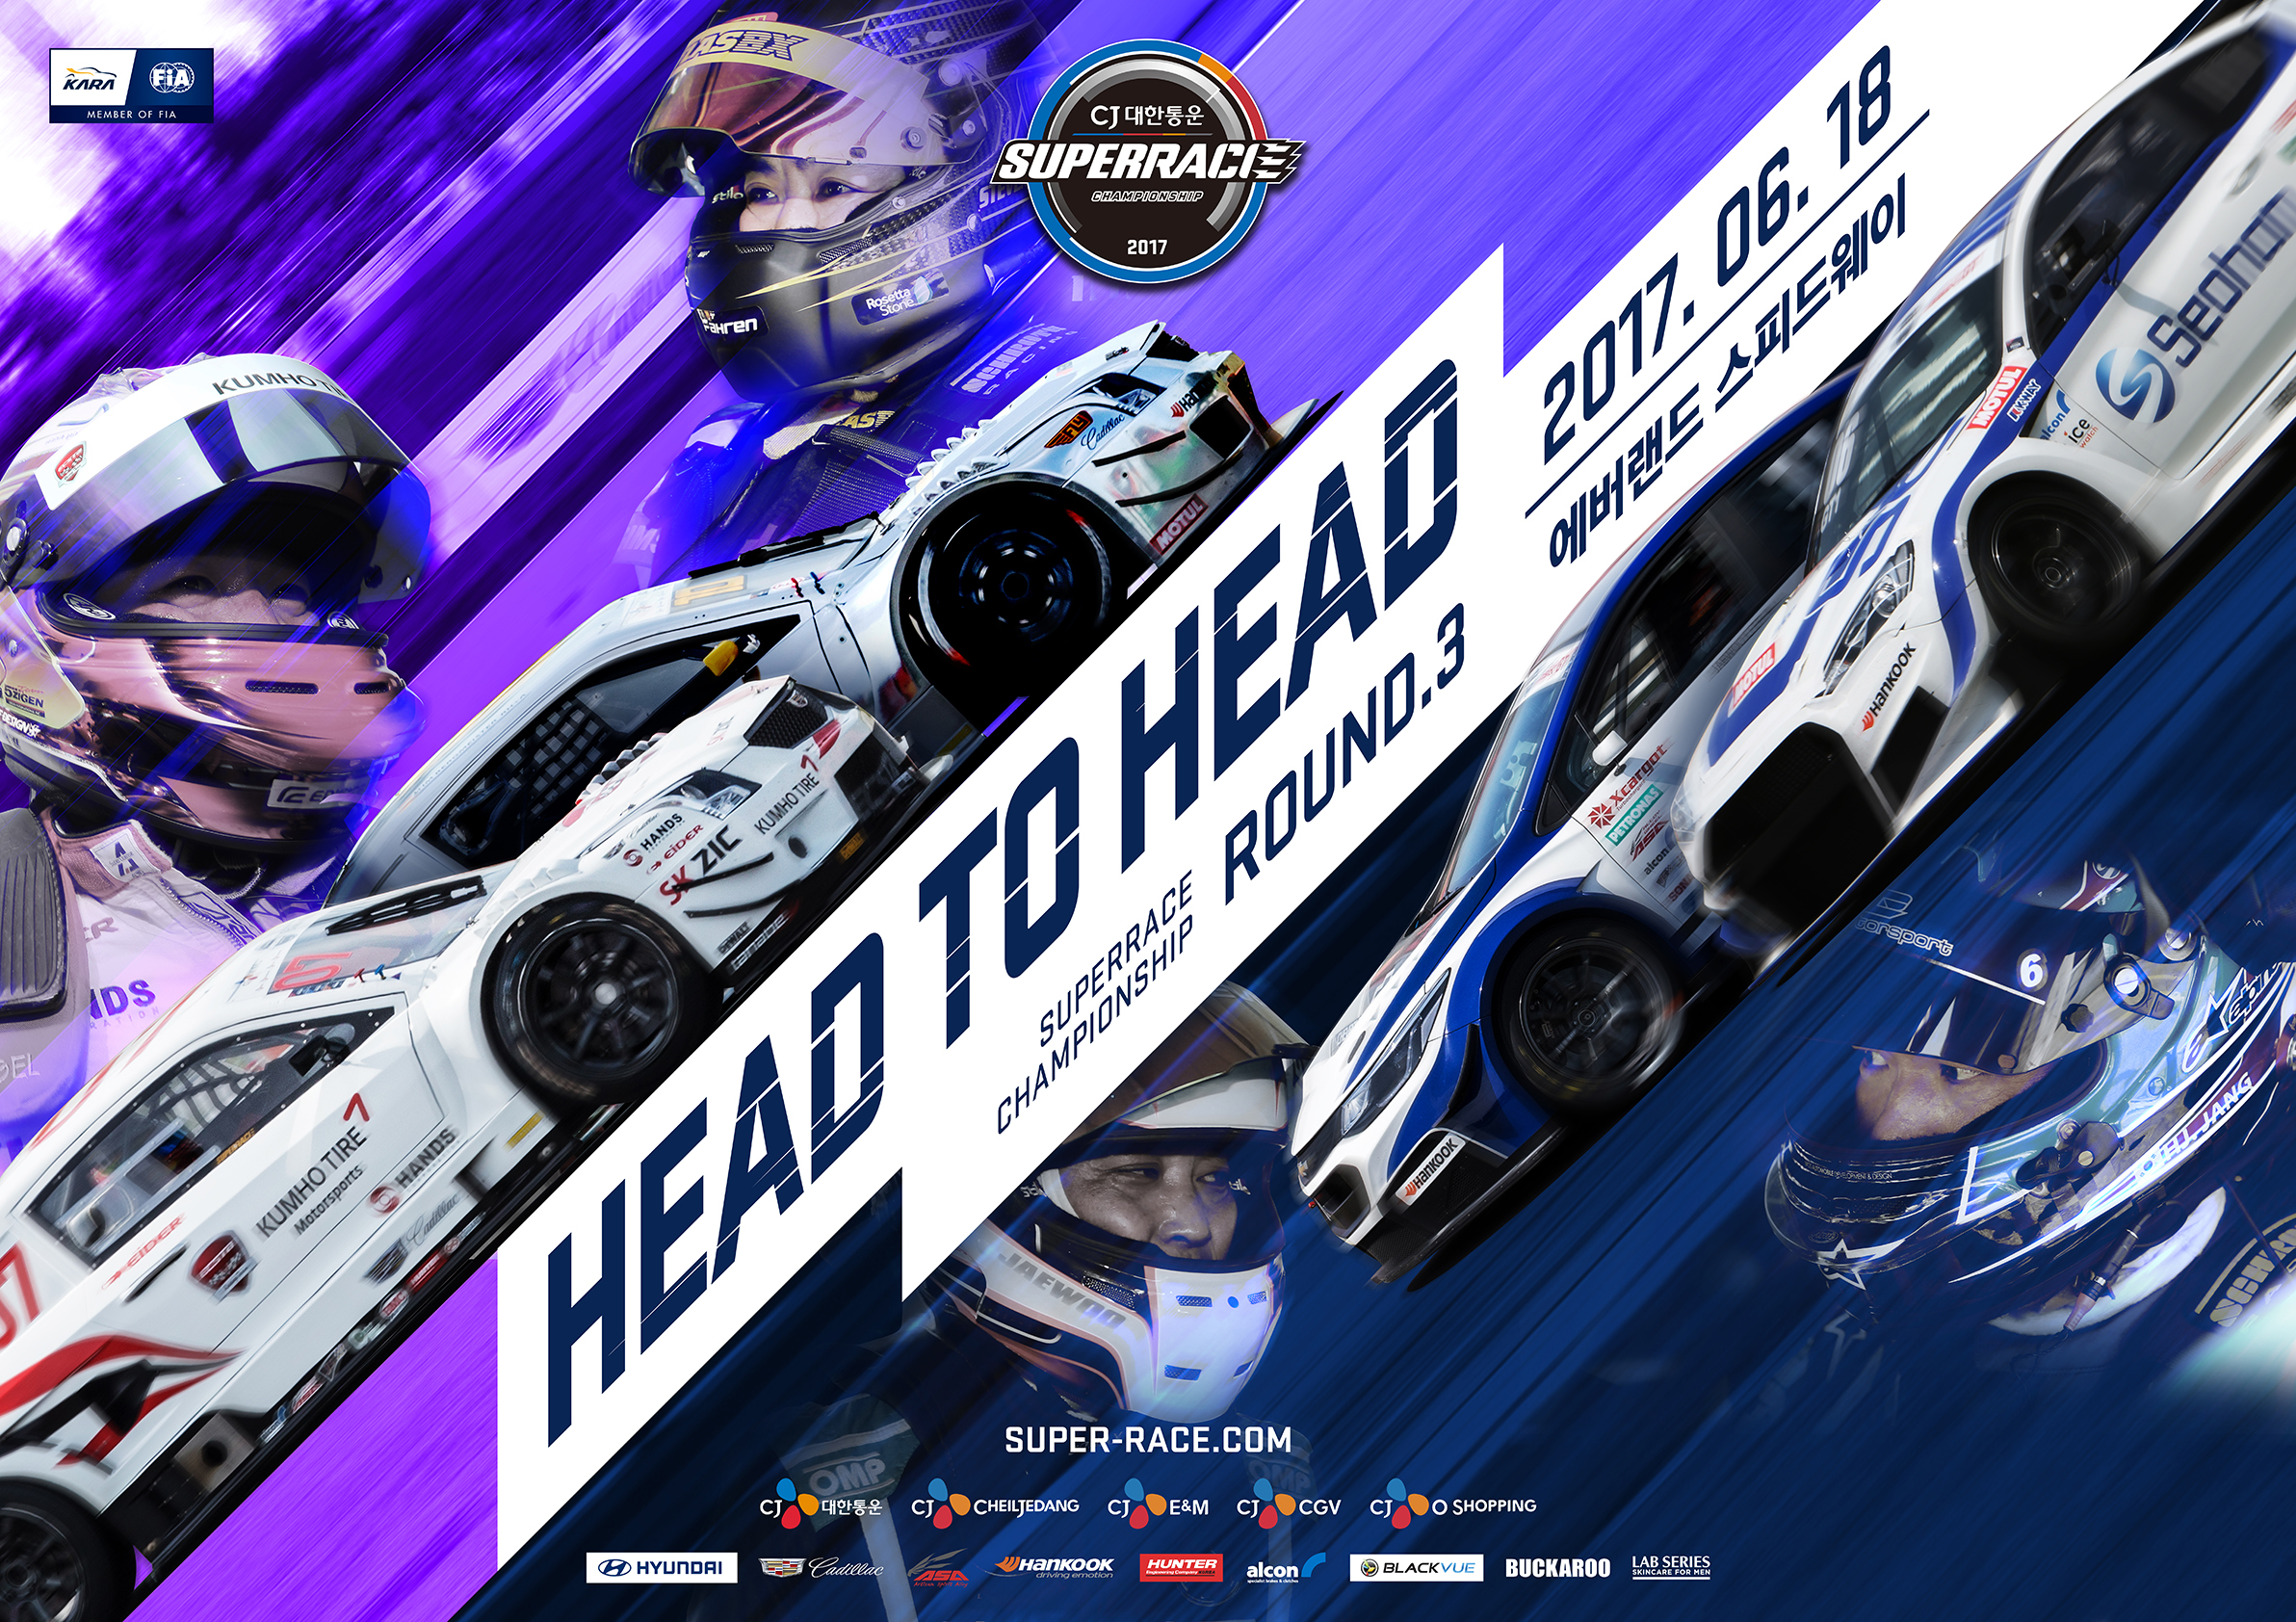 2017 CJ LOGISTICS SUPERRACE CHAMPIONSHIP KEY VISUAL